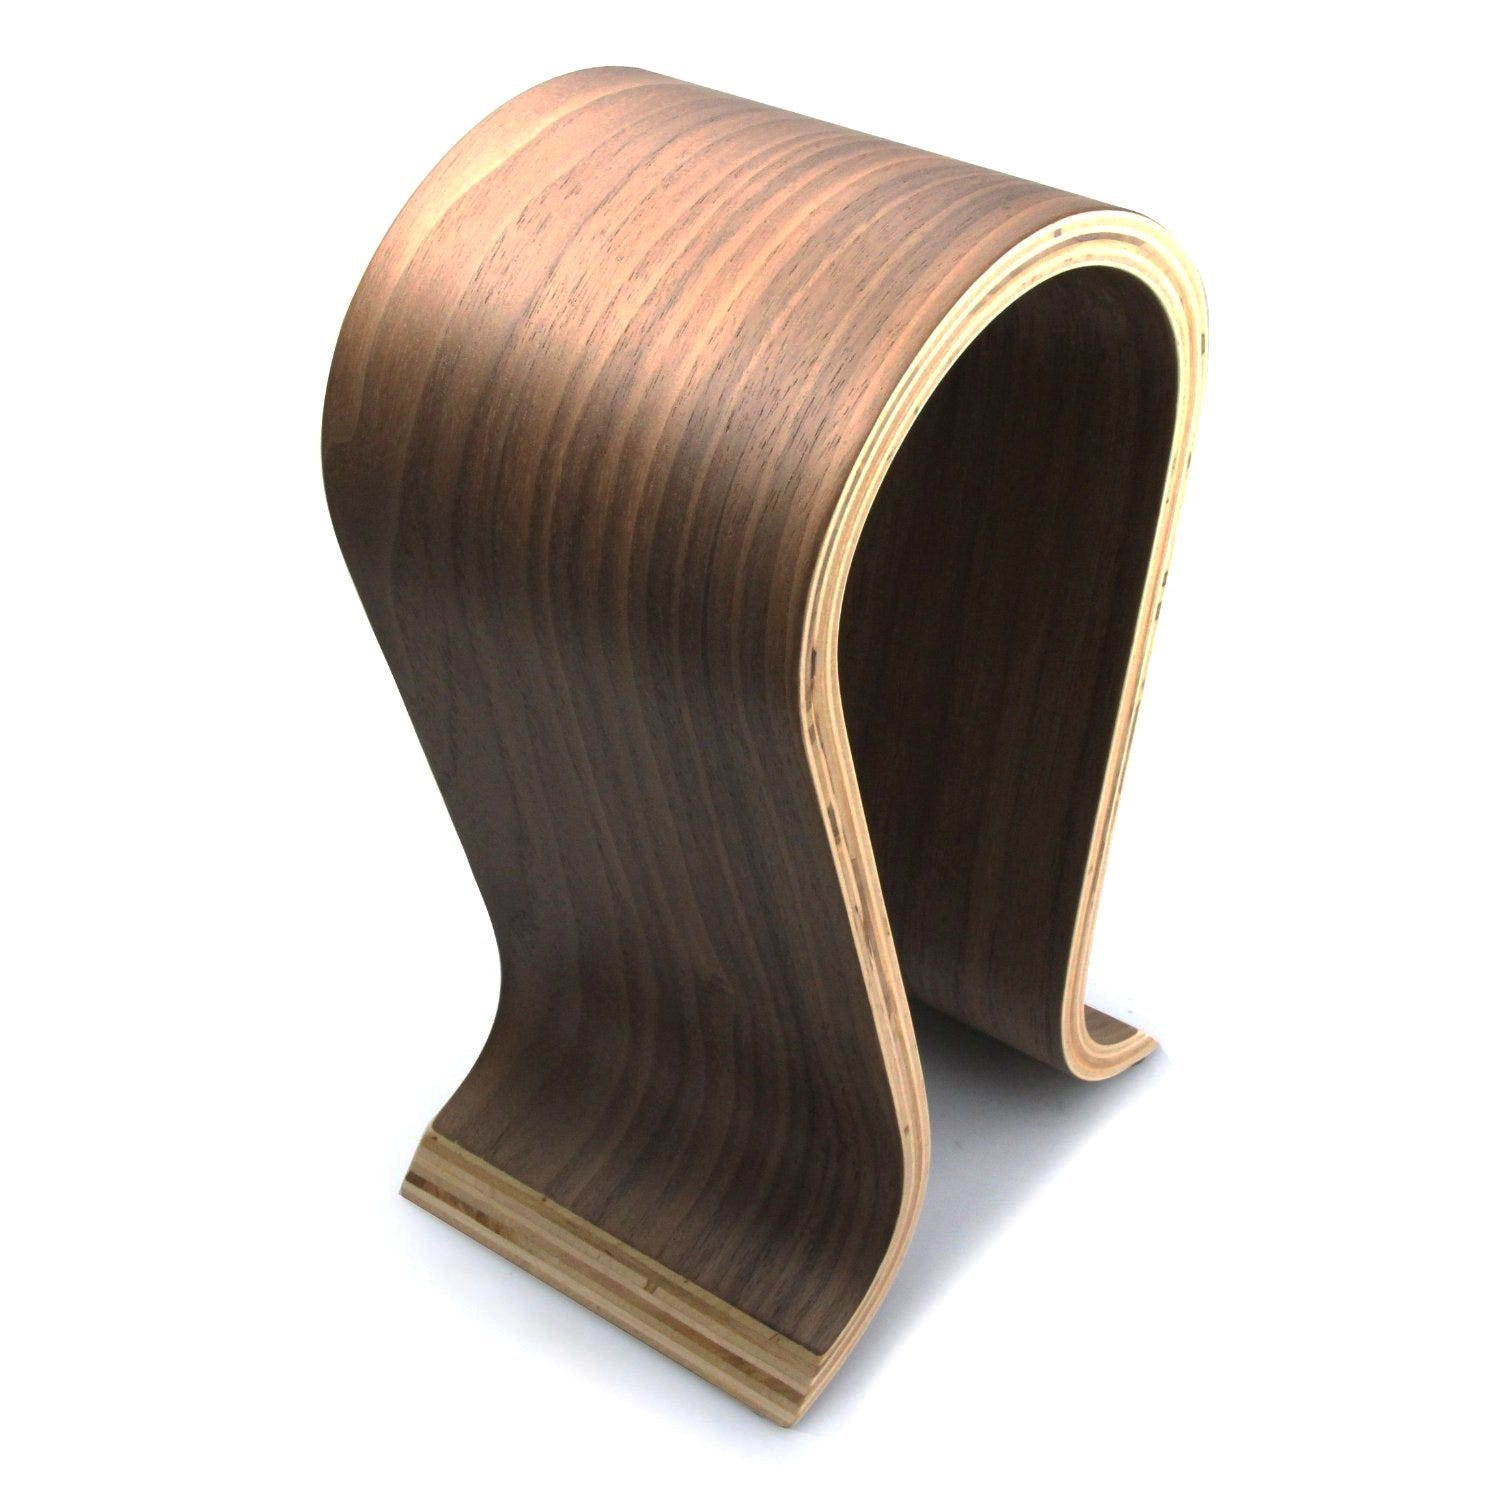 Omega wooden headphone stand